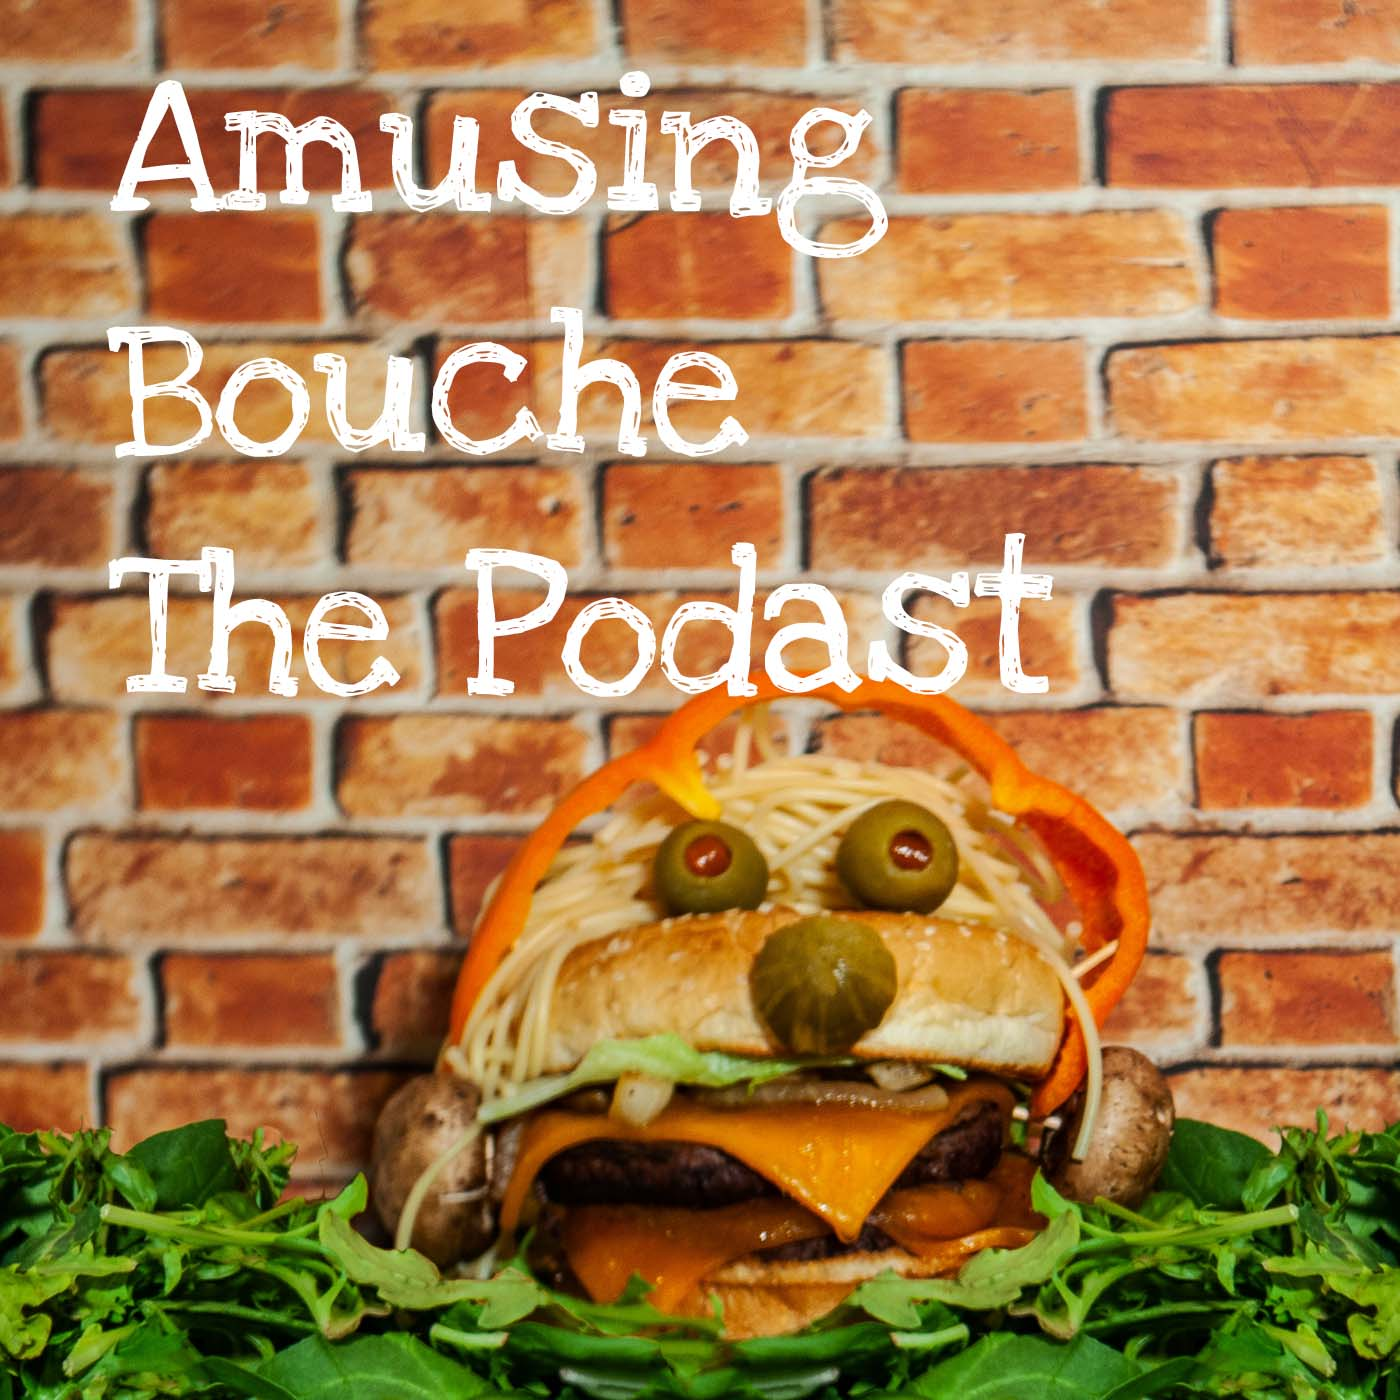 Amusing Bouche The Podcast